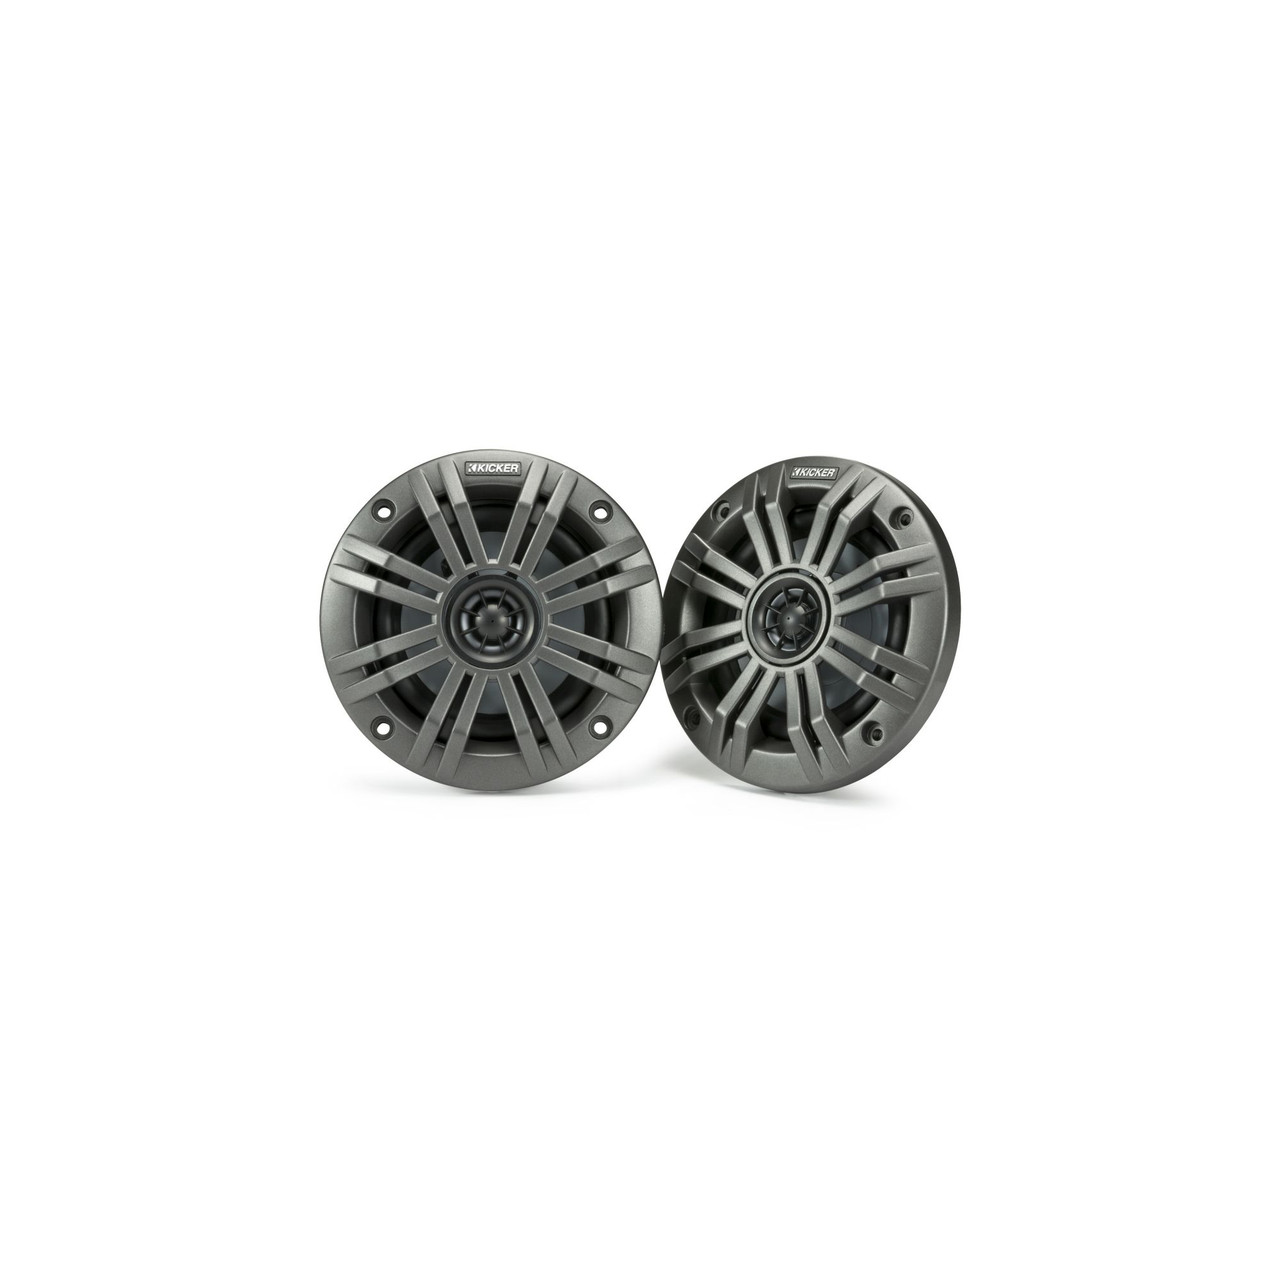 Kicker KM4 4-Inch (100mm) Marine Coaxial Speakers with 1/2-Inch